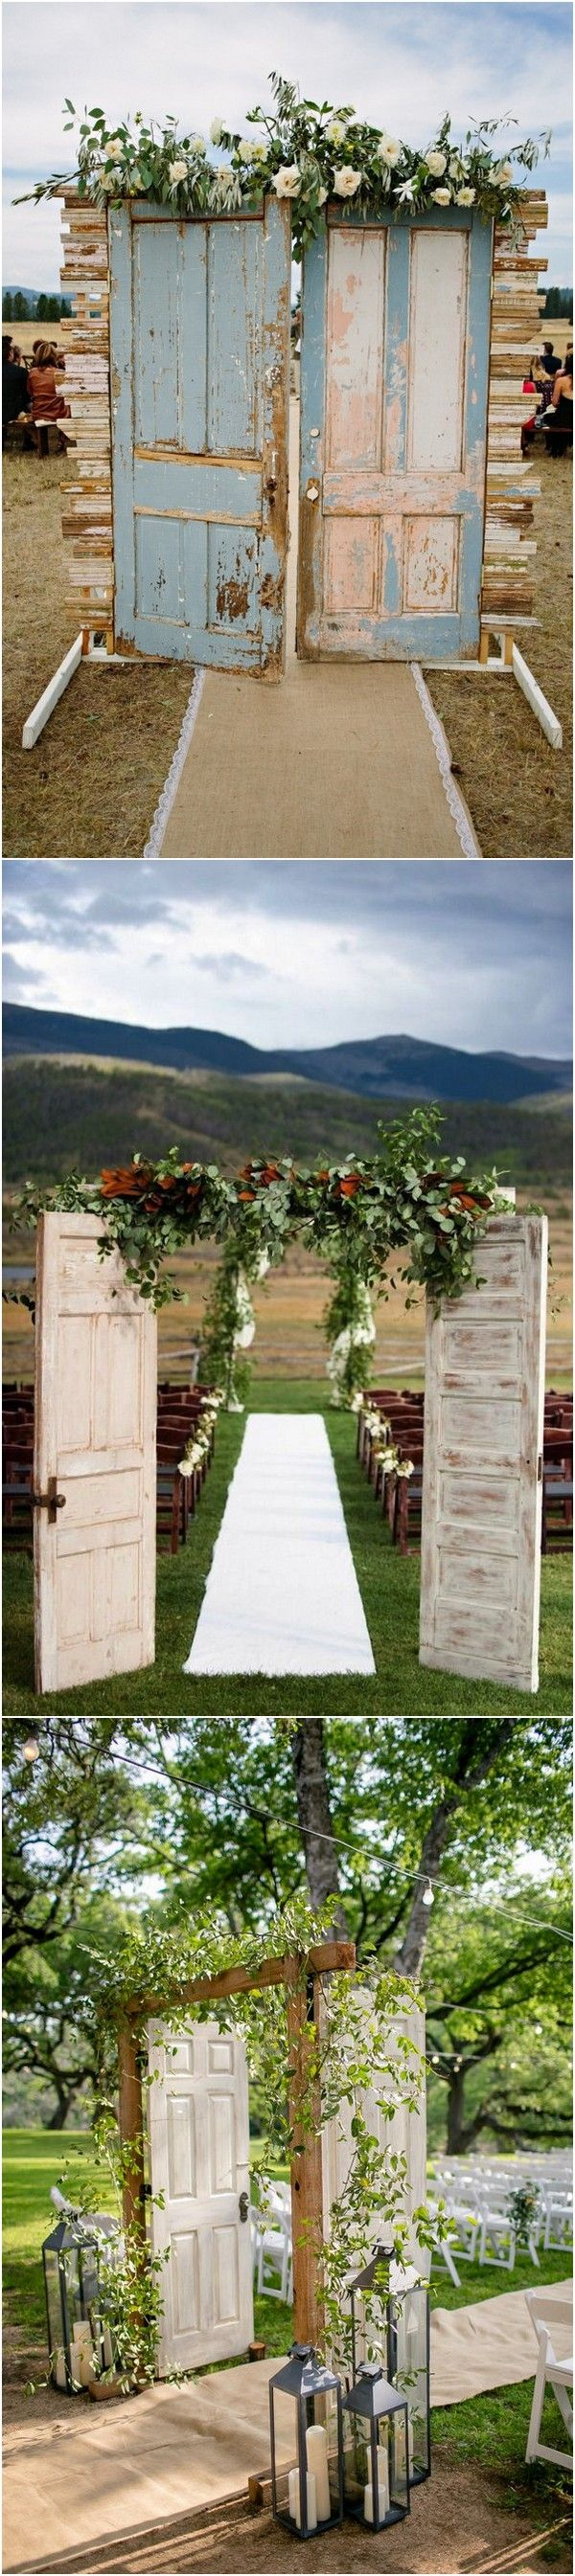 chic vintage wedding entrance door ideas